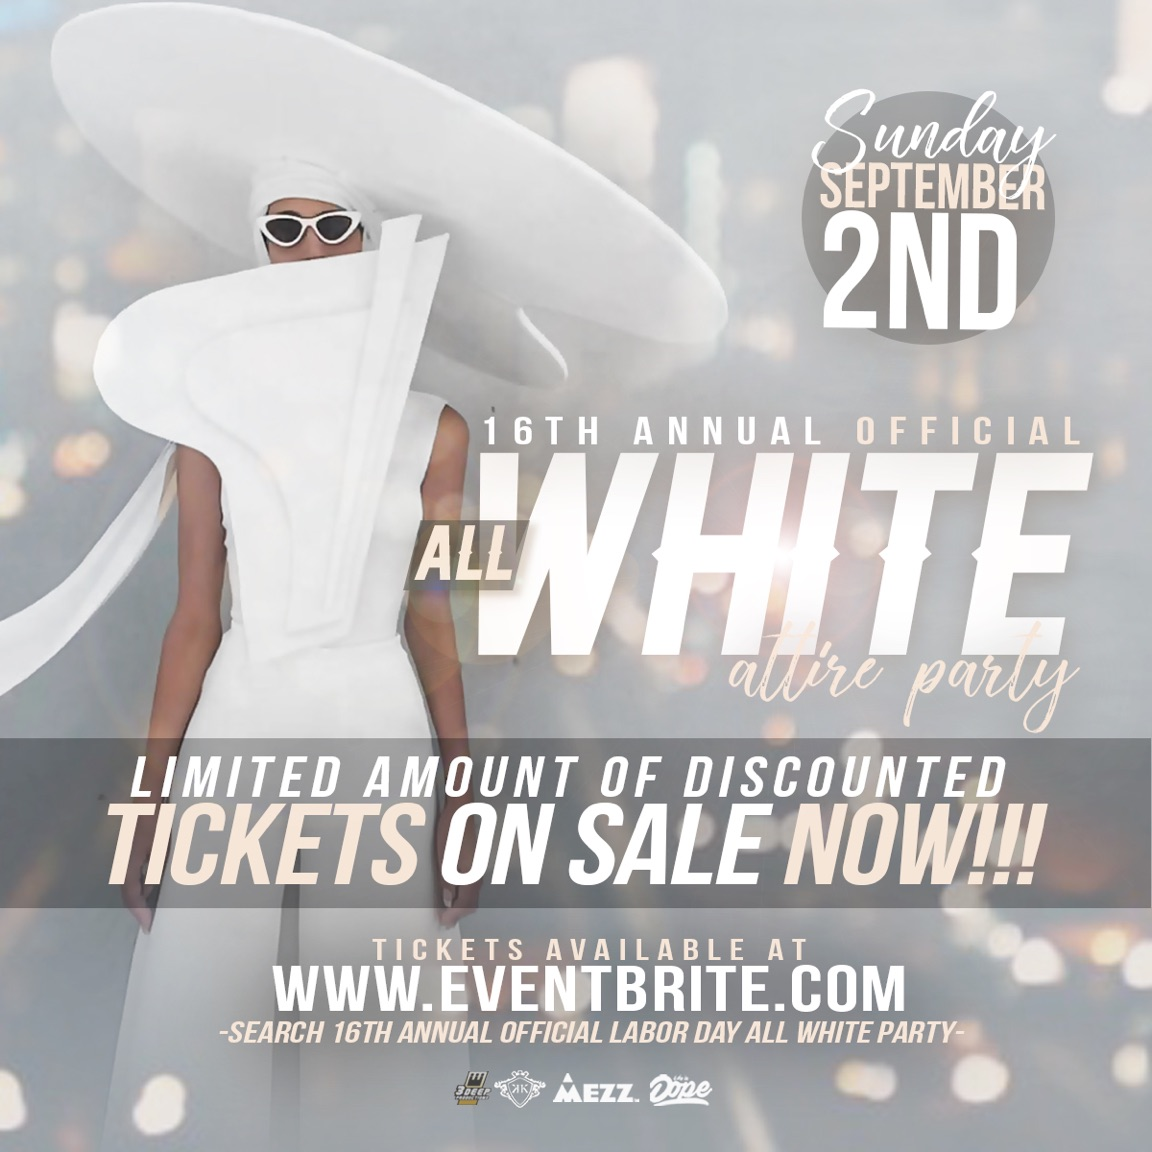 16th Annual Official All White Party Tickets 09 02 18